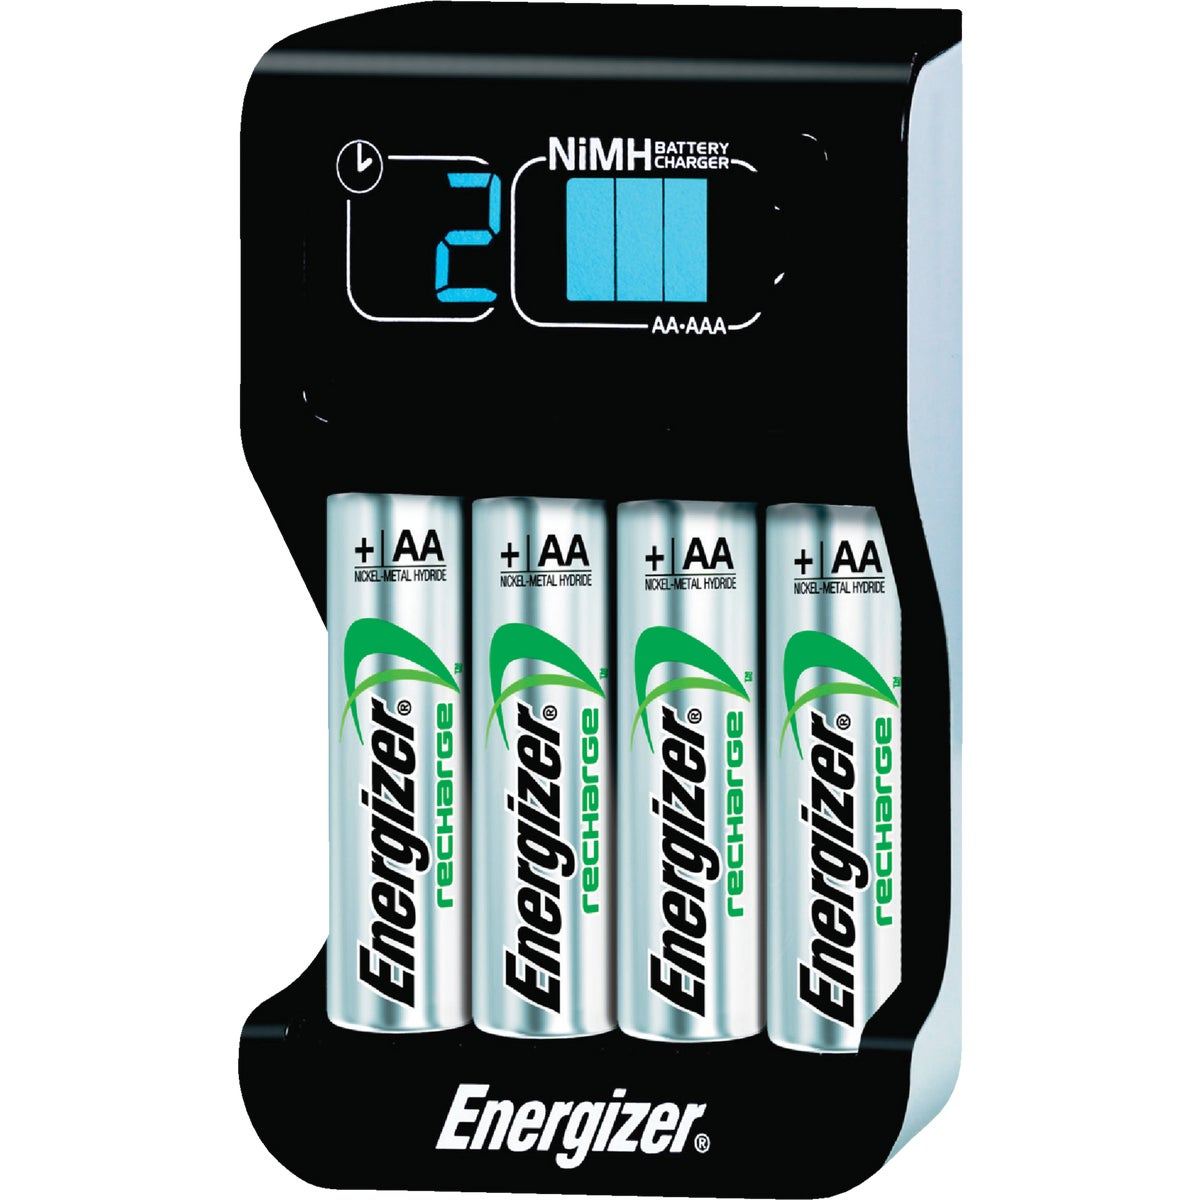 SMART BATTERY CHARGER - CHP4WB4 by Energizer